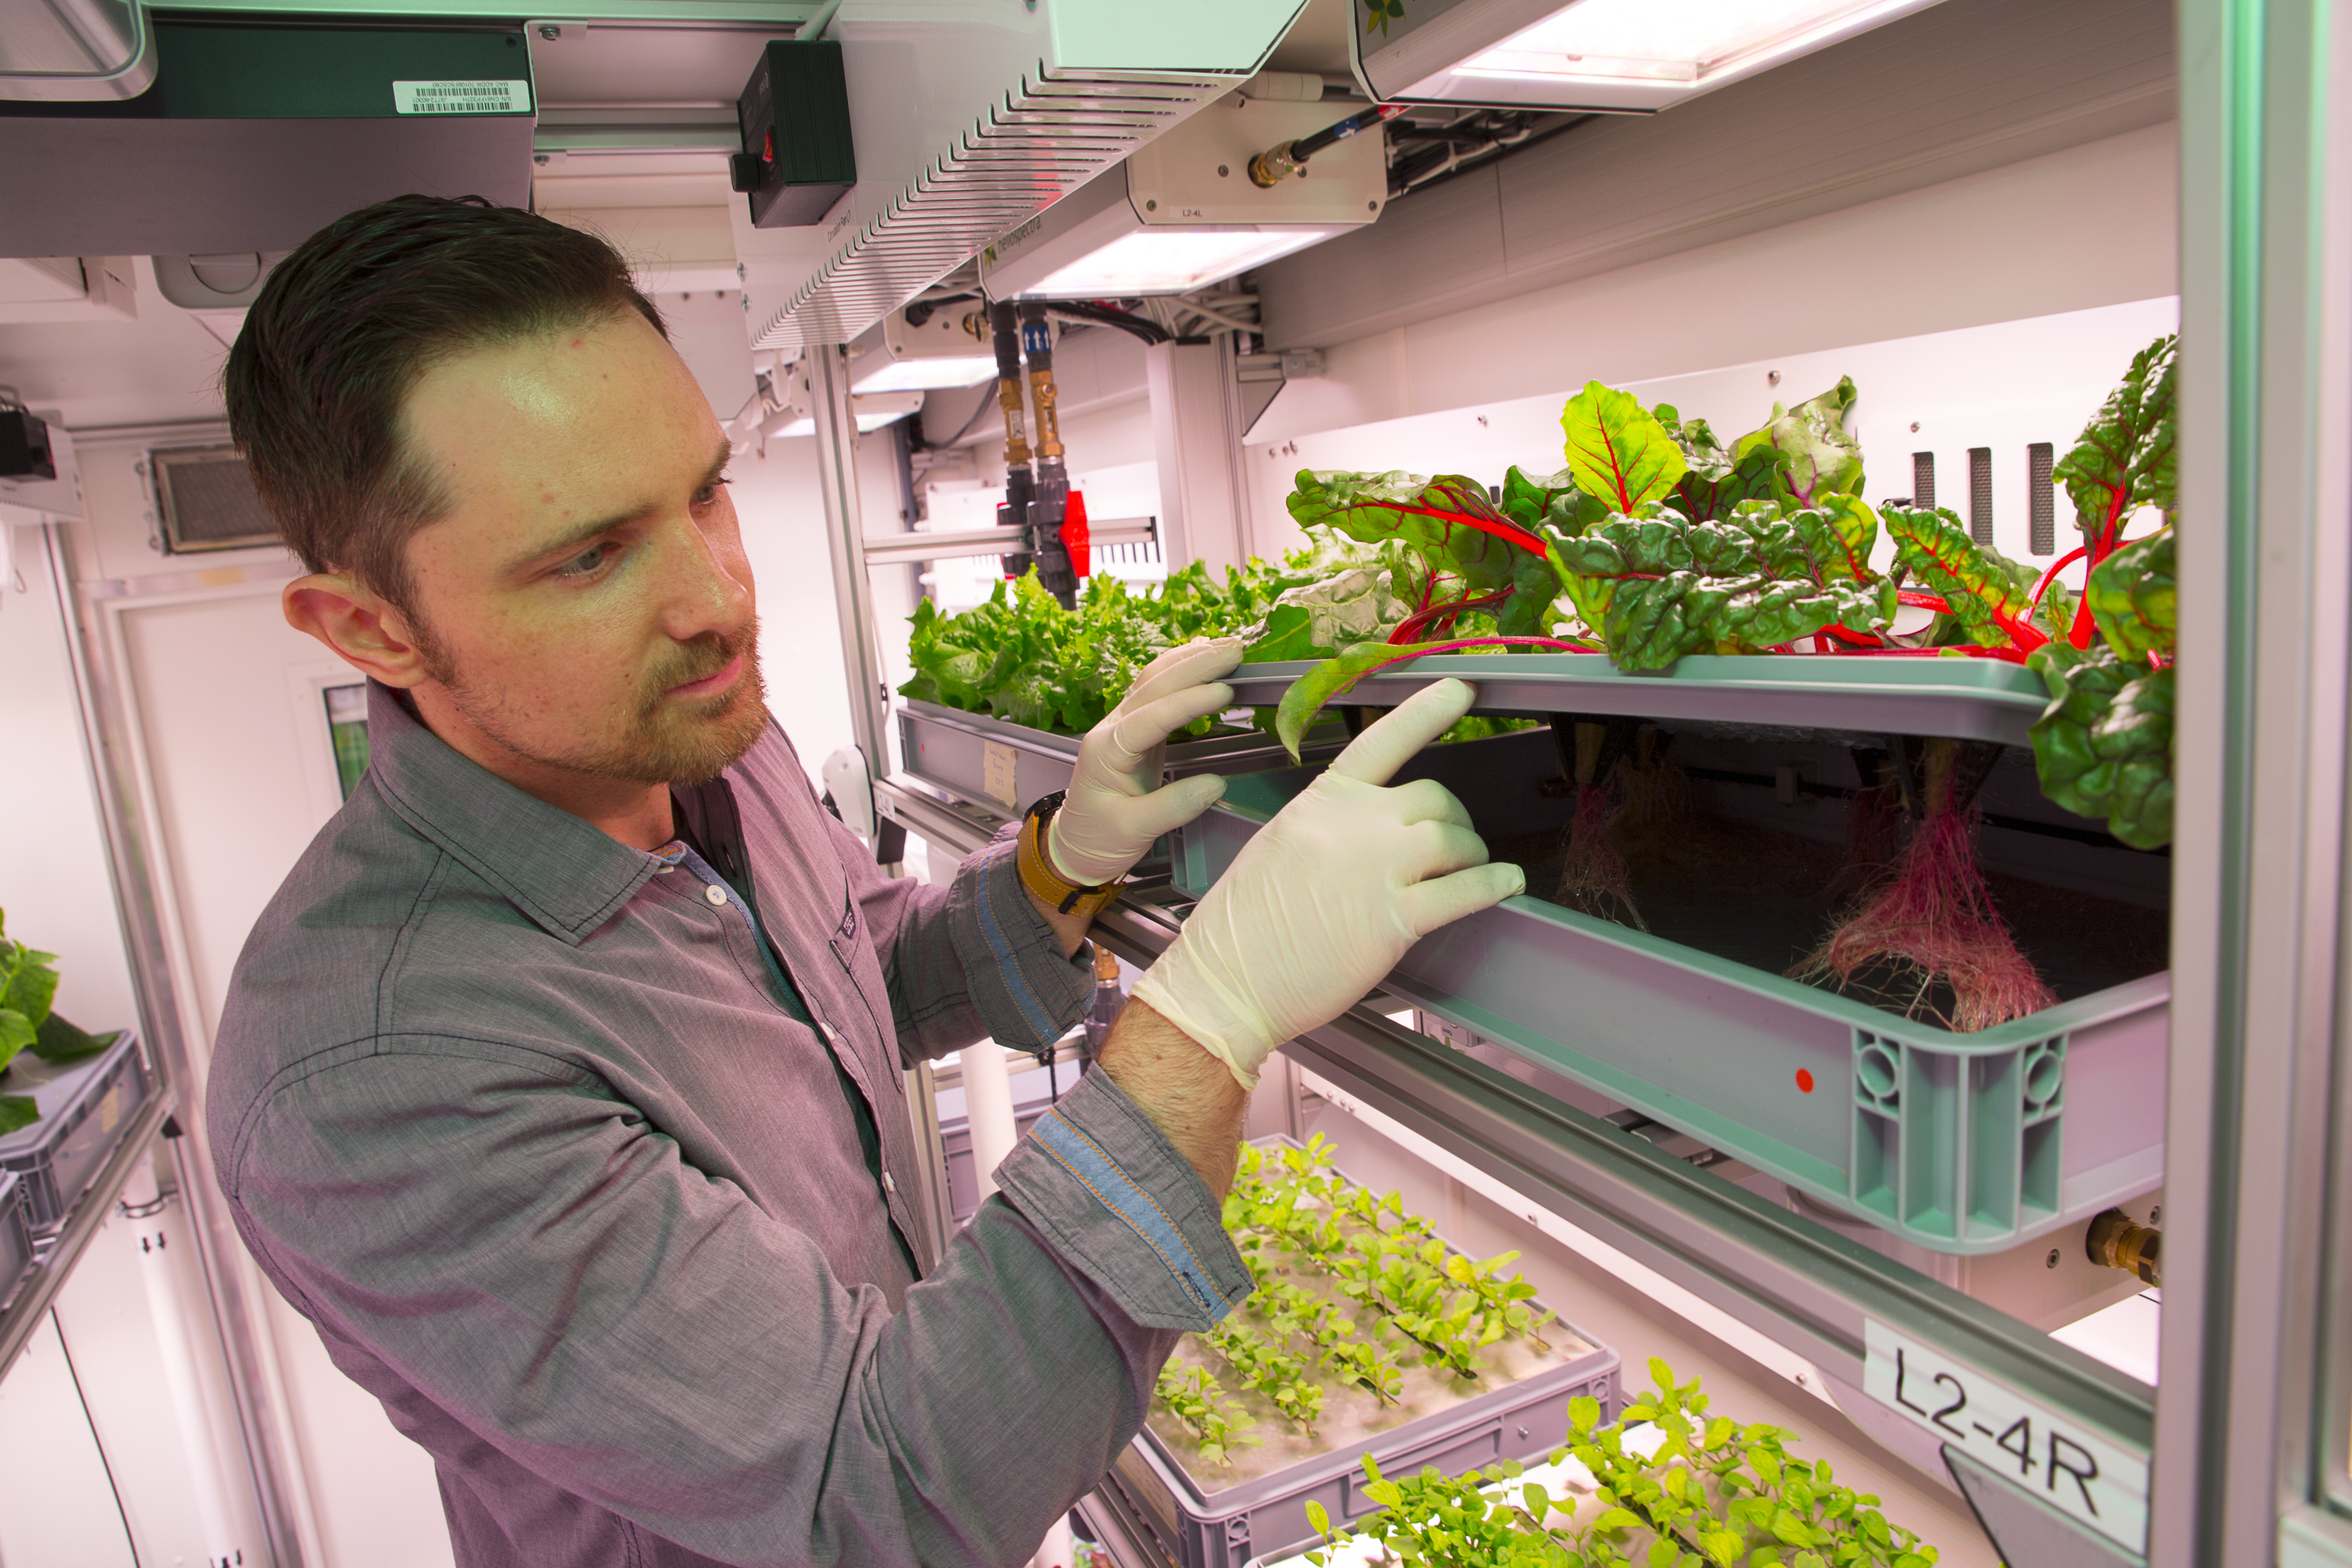 Matt Bamsey looks at the root of the chard plants in the the Antarctic greenhouse EDEN-ISS (credits: DLR German Aerospace Center / Flickr Creative Commons Attribution 2.0 Generic (CC BY 2.0))